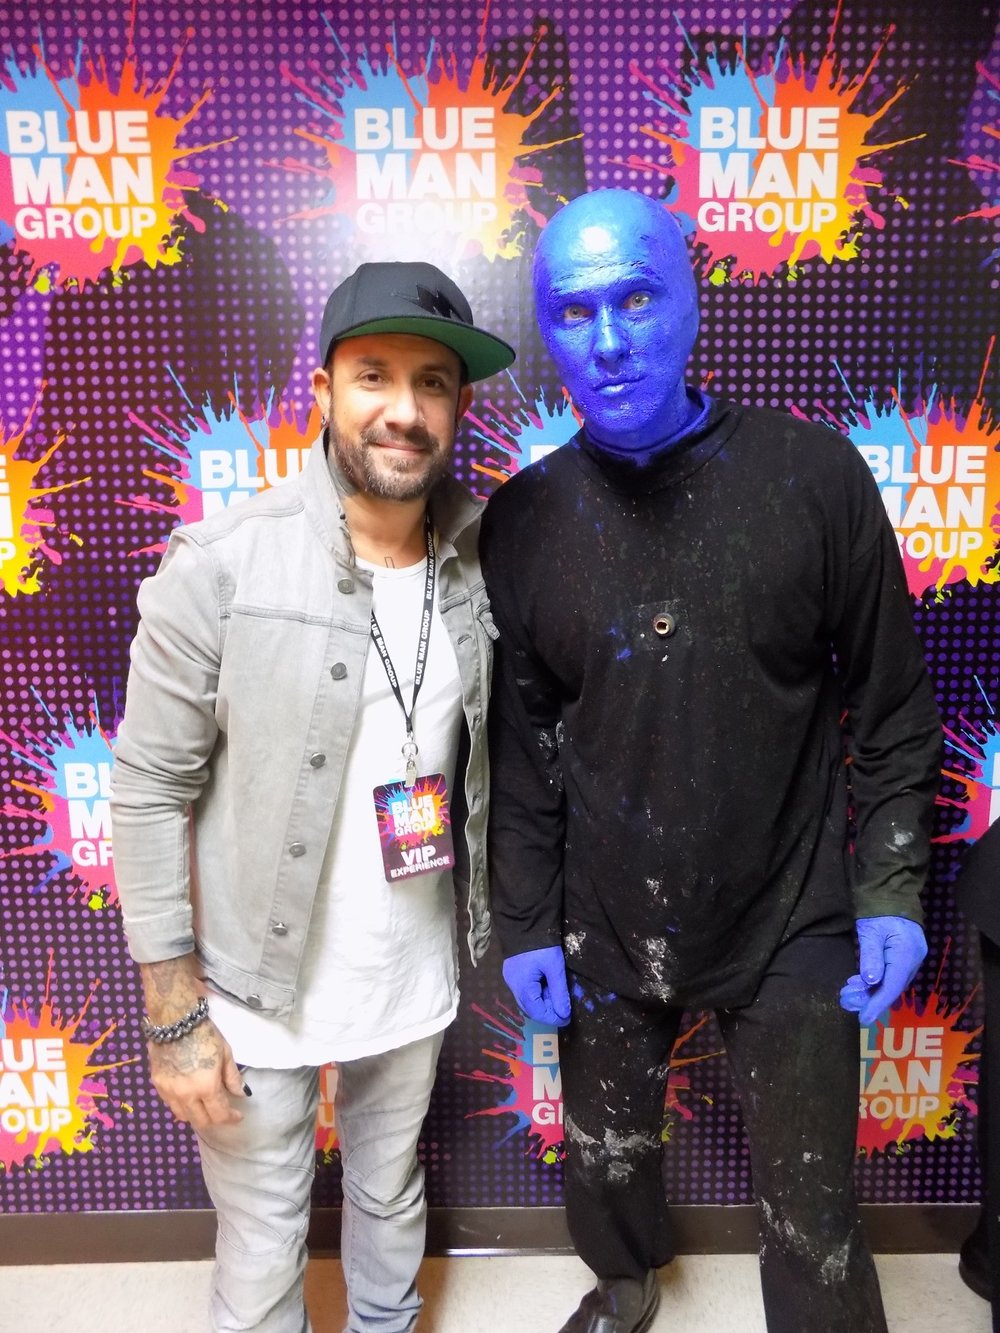 The 19th time AJ from The Backstreet Boys came to see our show. He REALLY likes Blue Man Group.